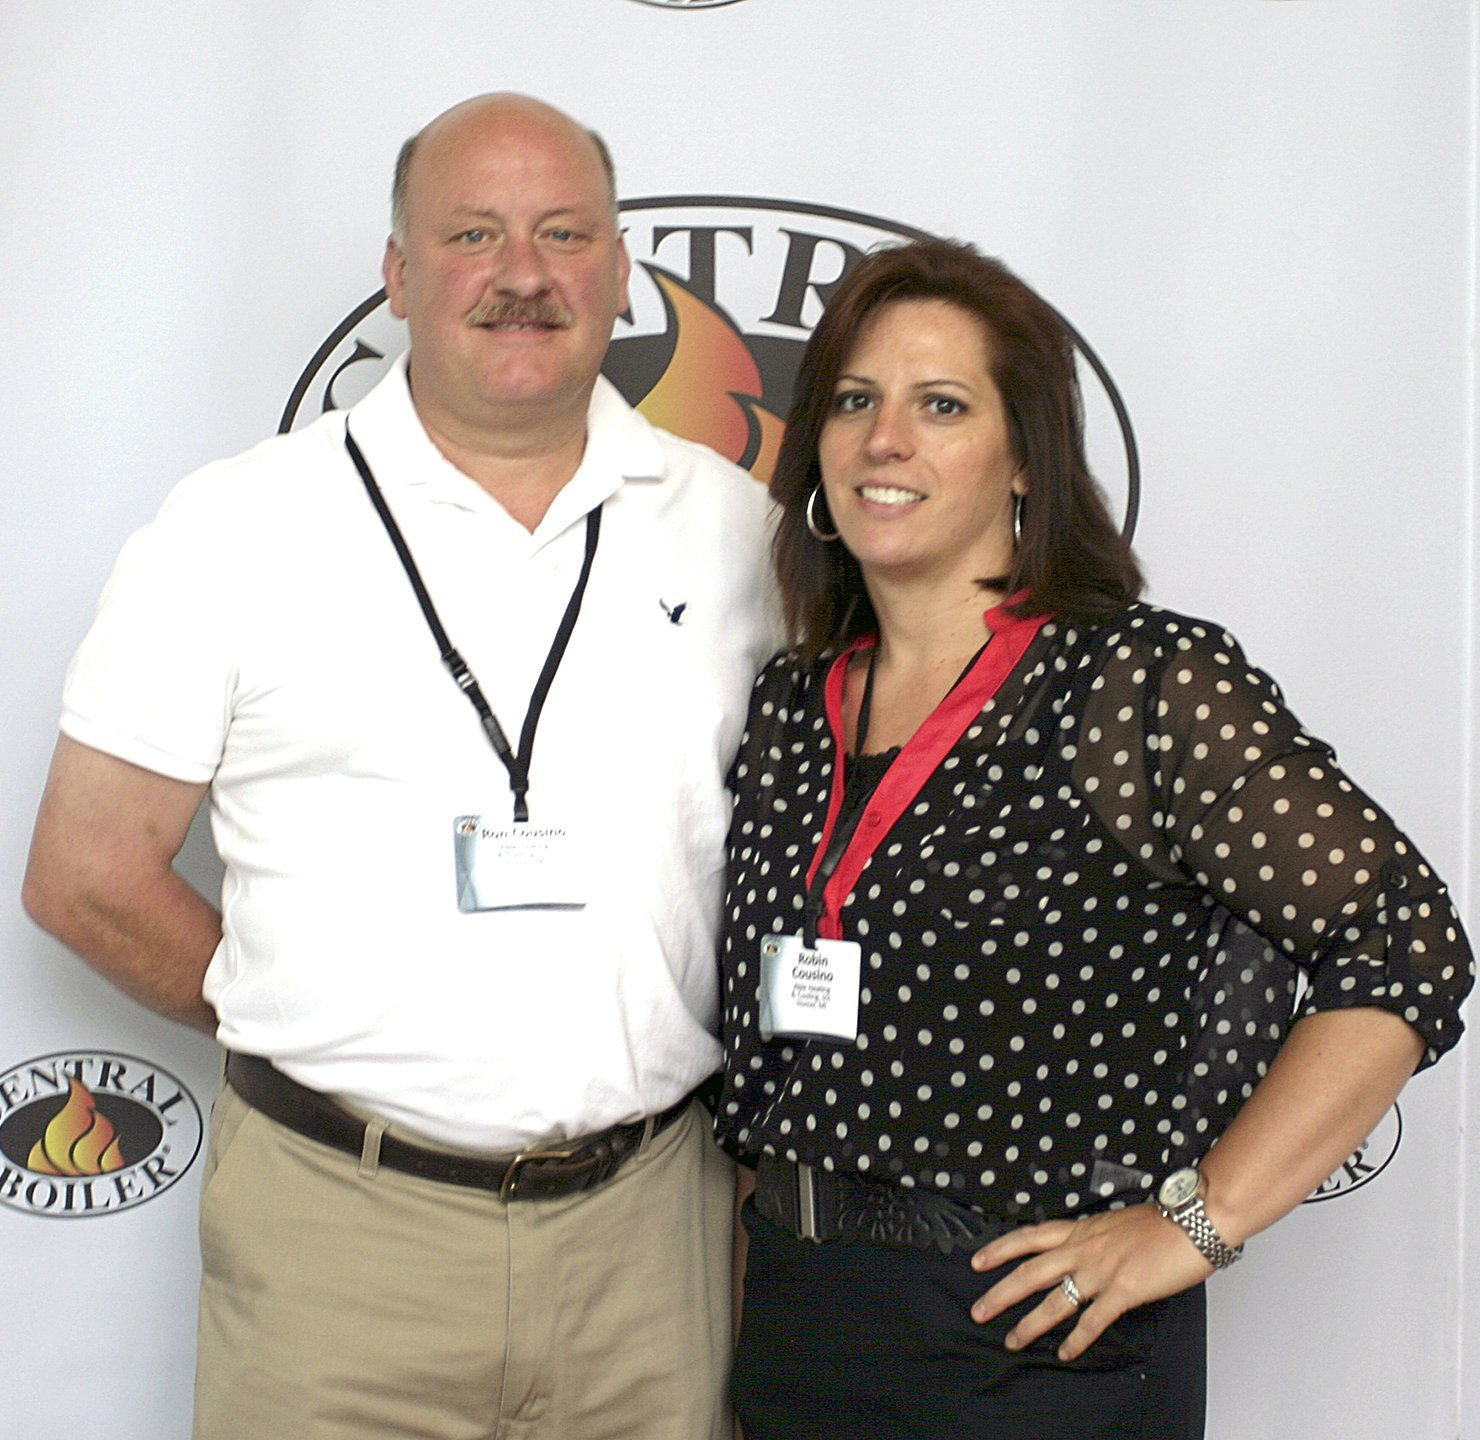 Ron and Robin Cousino, Owners